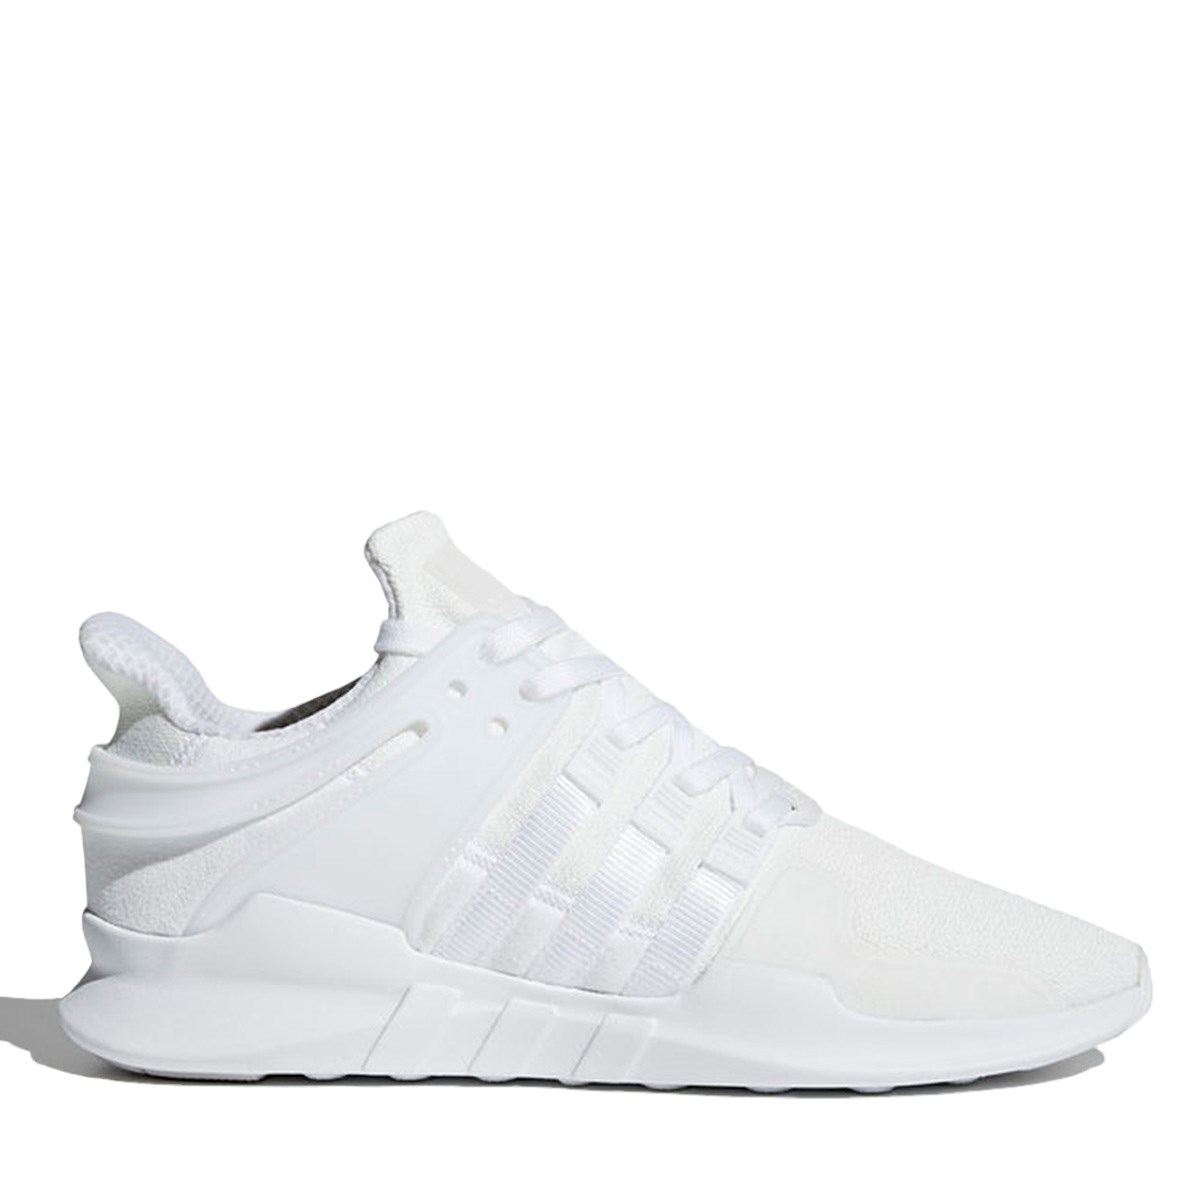 Men's EQT Support ADV White Sneaker